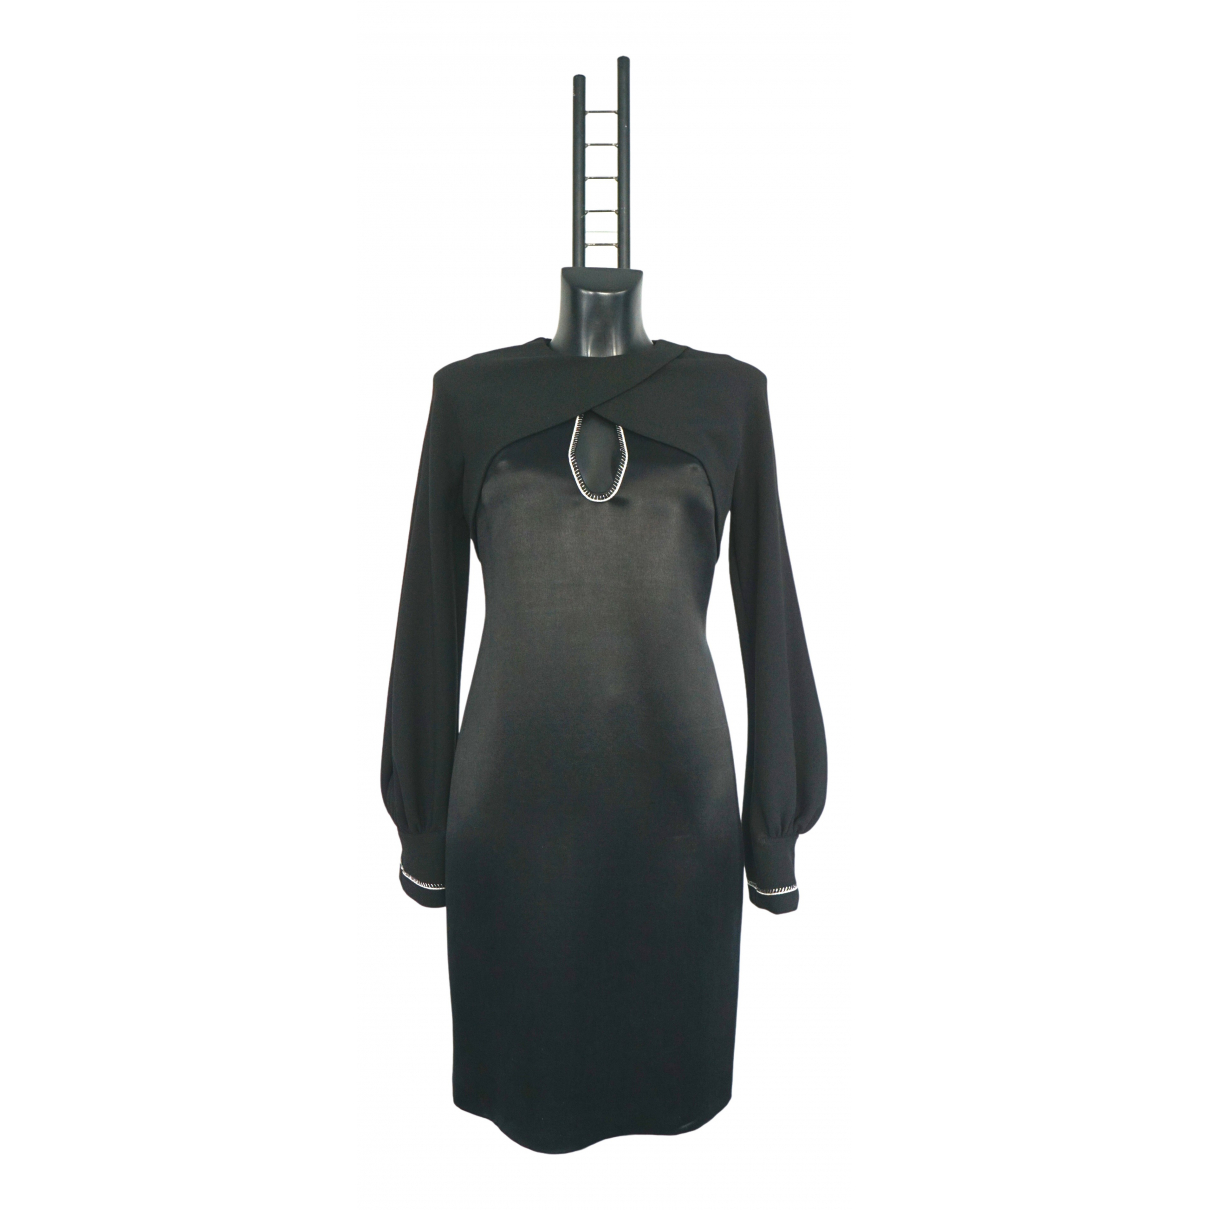 Genny \N Black dress for Women 40 IT